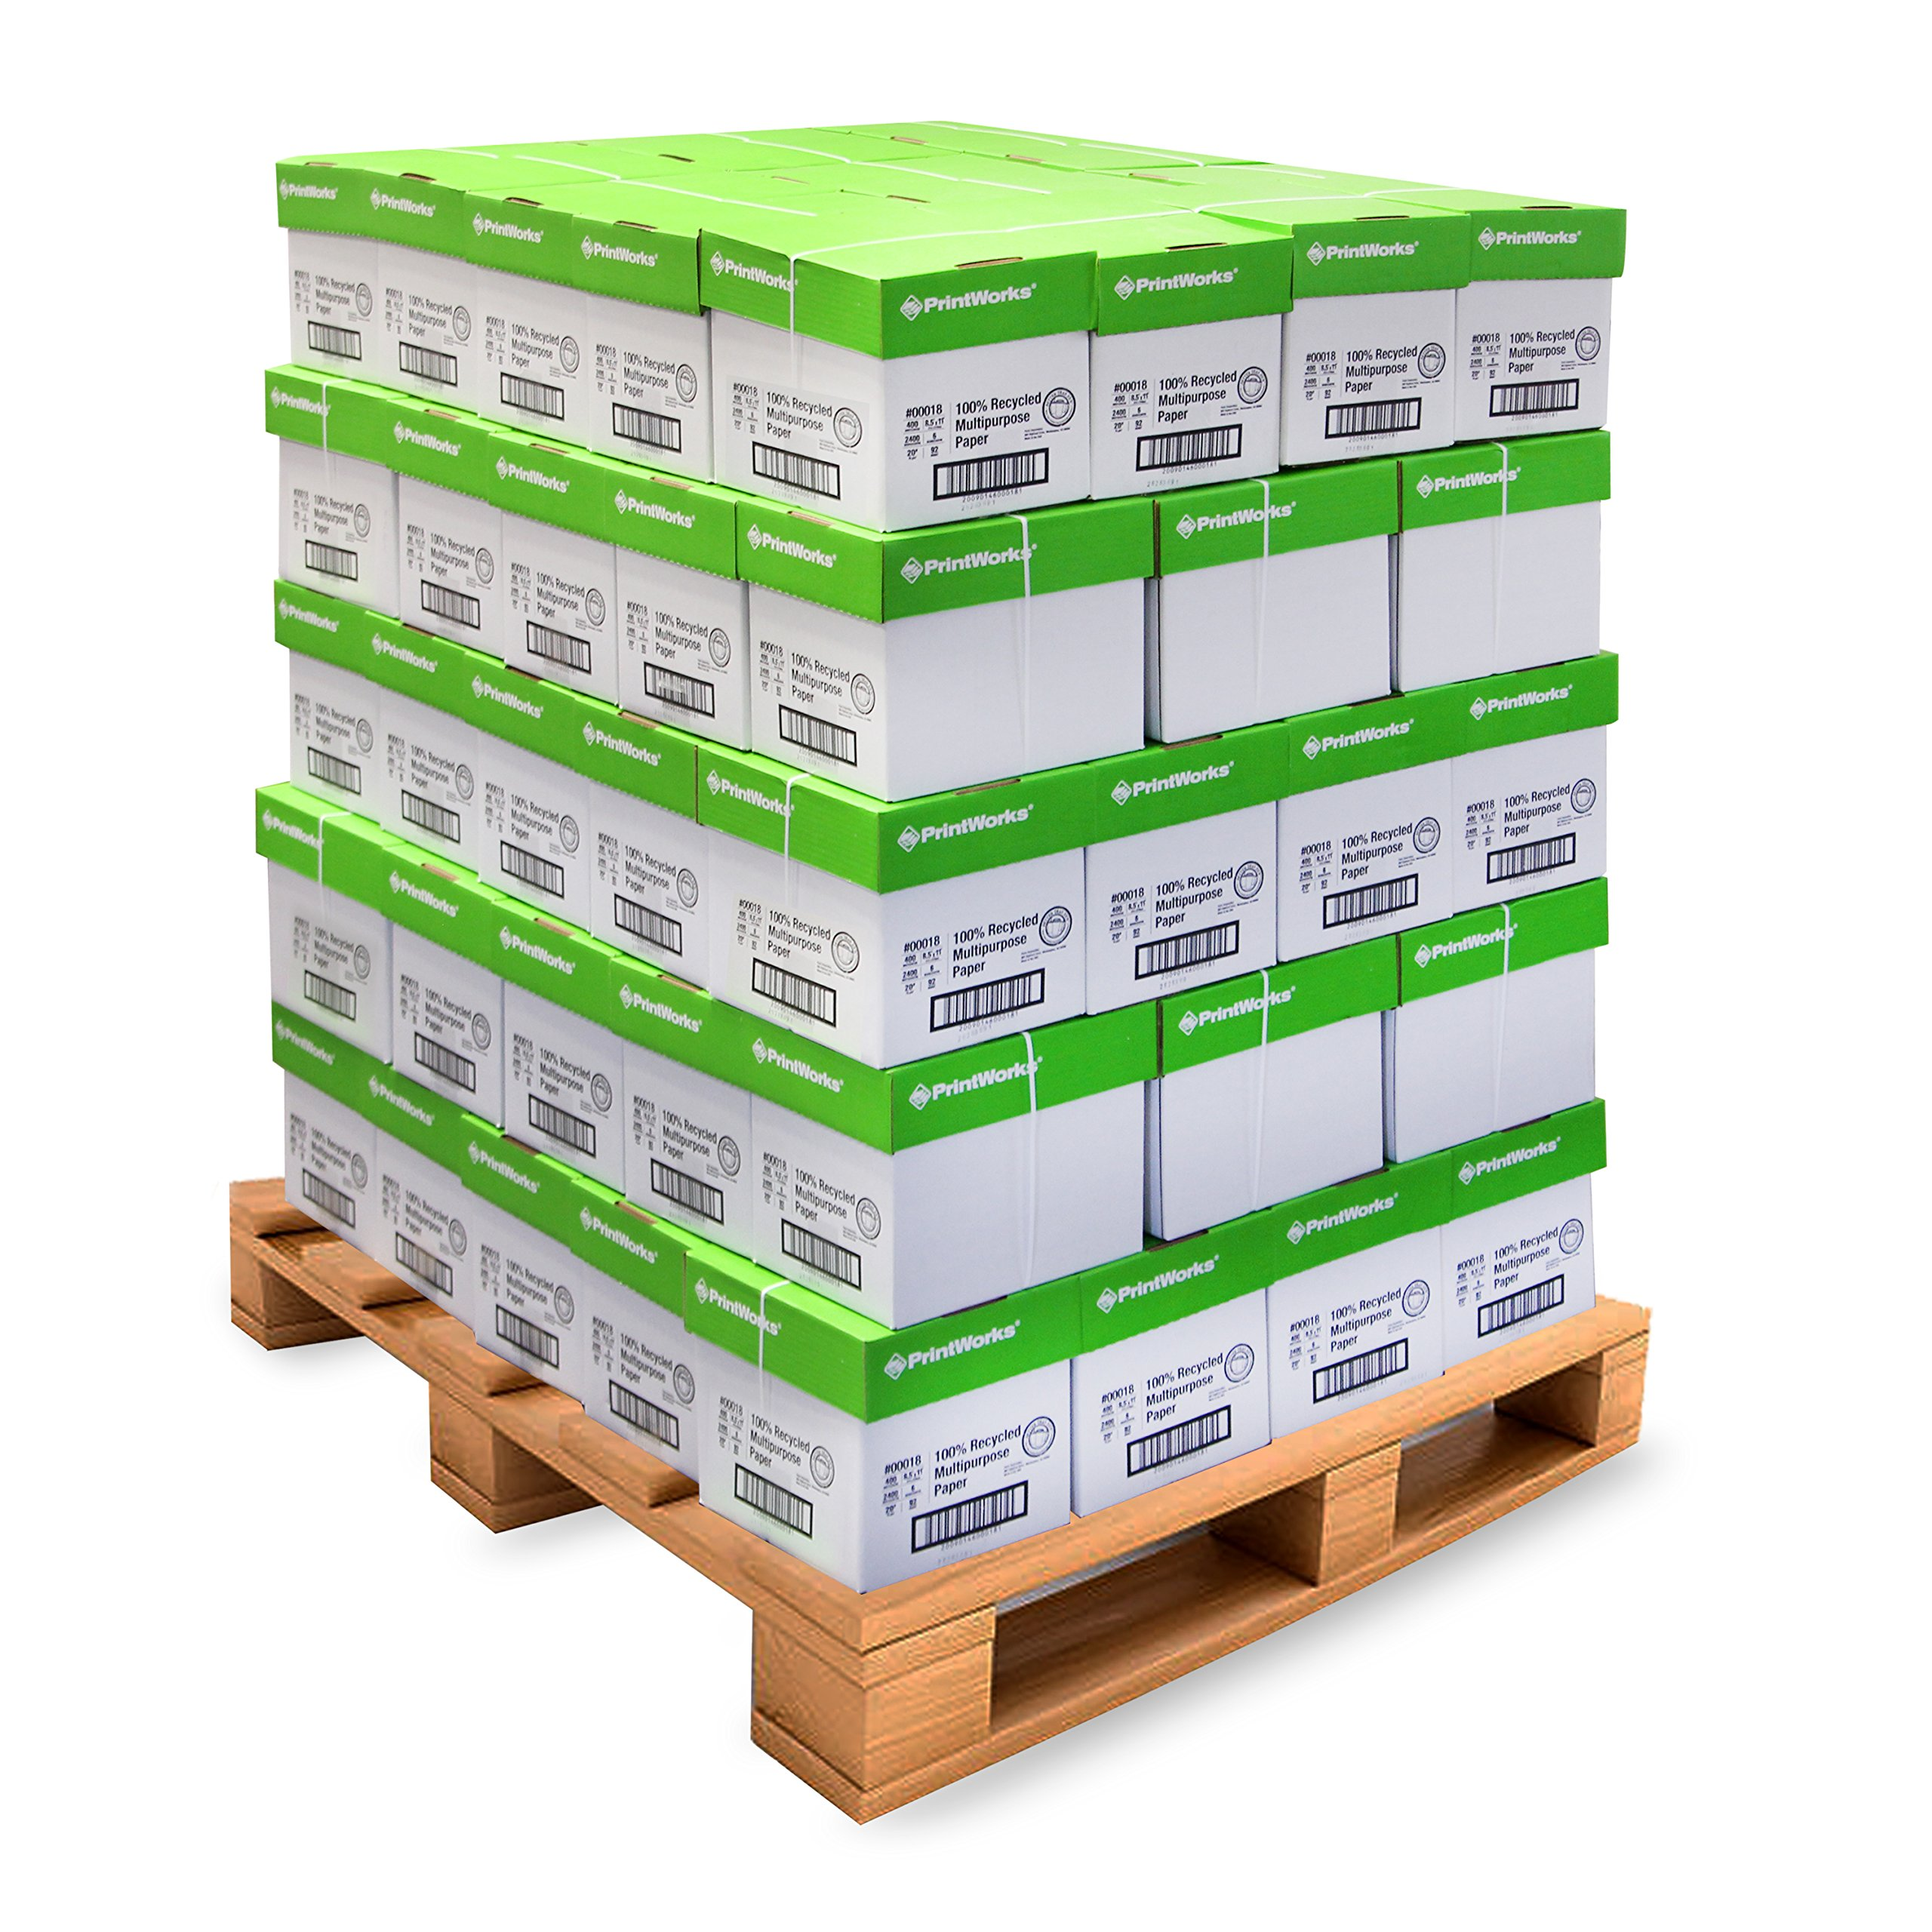 Printworks 100 Percent Recycled Multipurpose Paper -Pallet Pricing, 20 Pounds, 92 Bright, 8.5 x 11, 2400 Sheets/Carton, 80 Cartons/Pallet, 192,000 sheets (00018PAL)